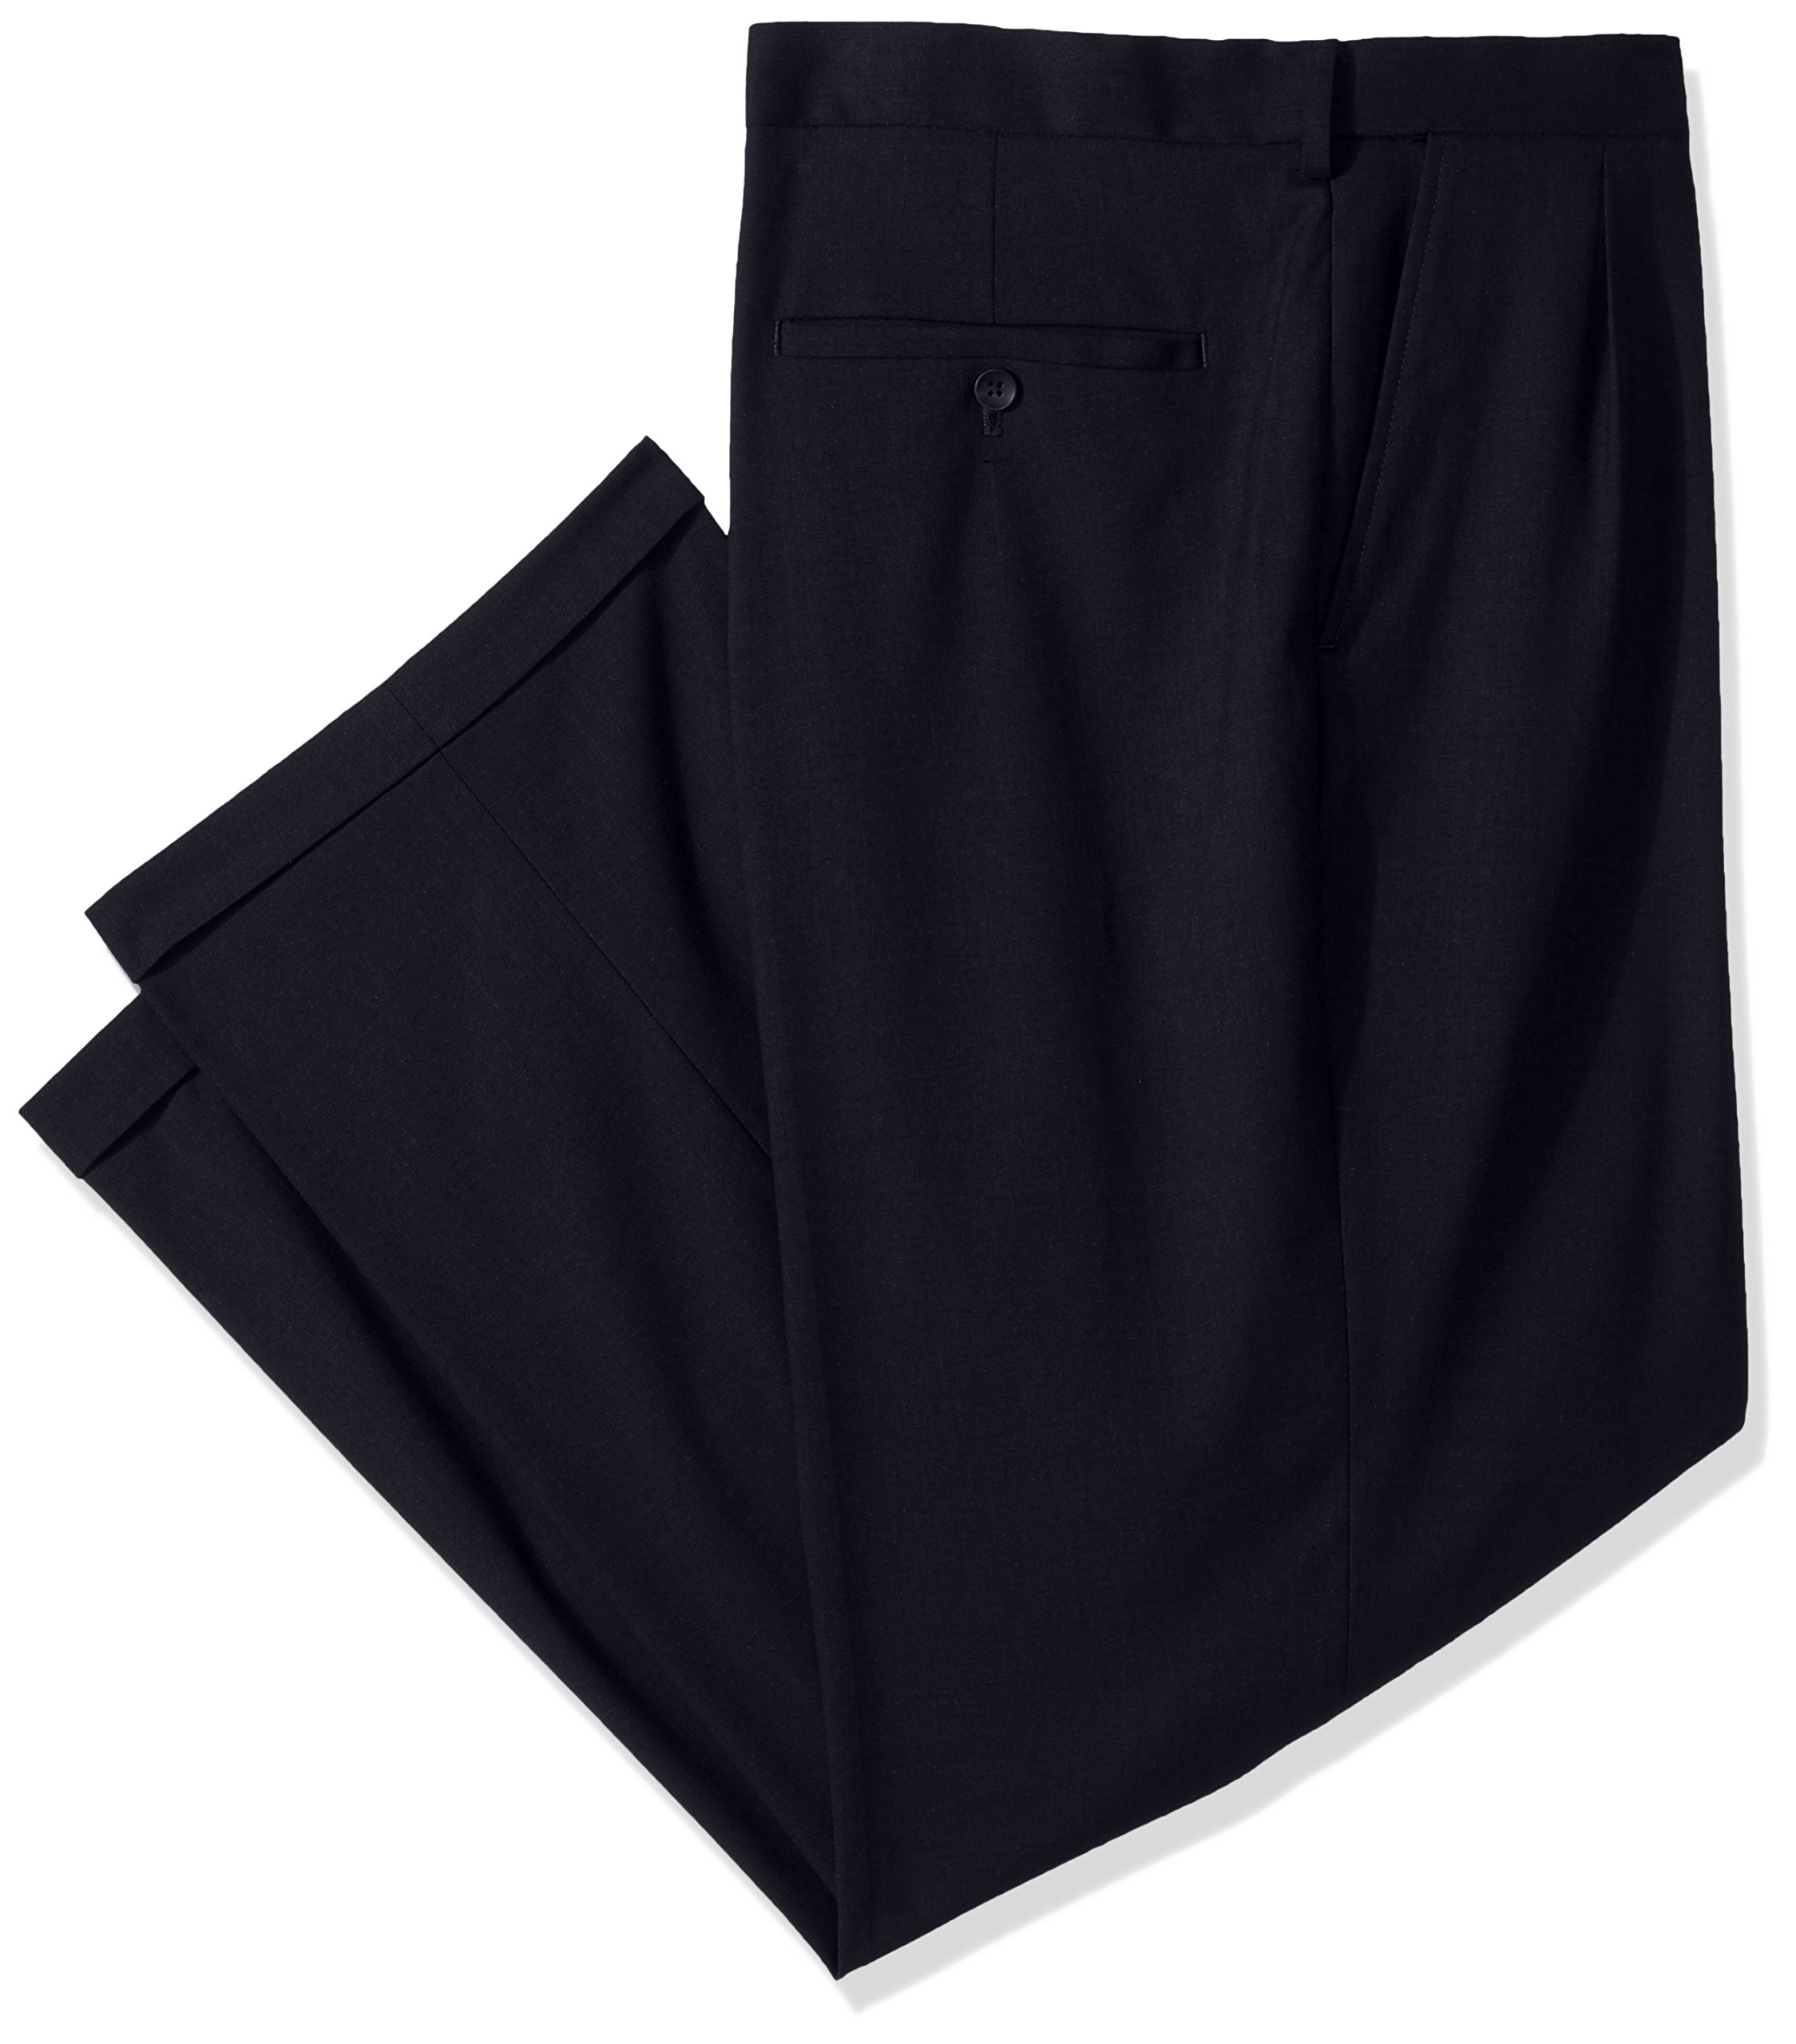 Haggar Men's Big and Tall J.m Premium Stretch Classic Fit Pleat Front Pant, Dark Navy, 46Wx30L